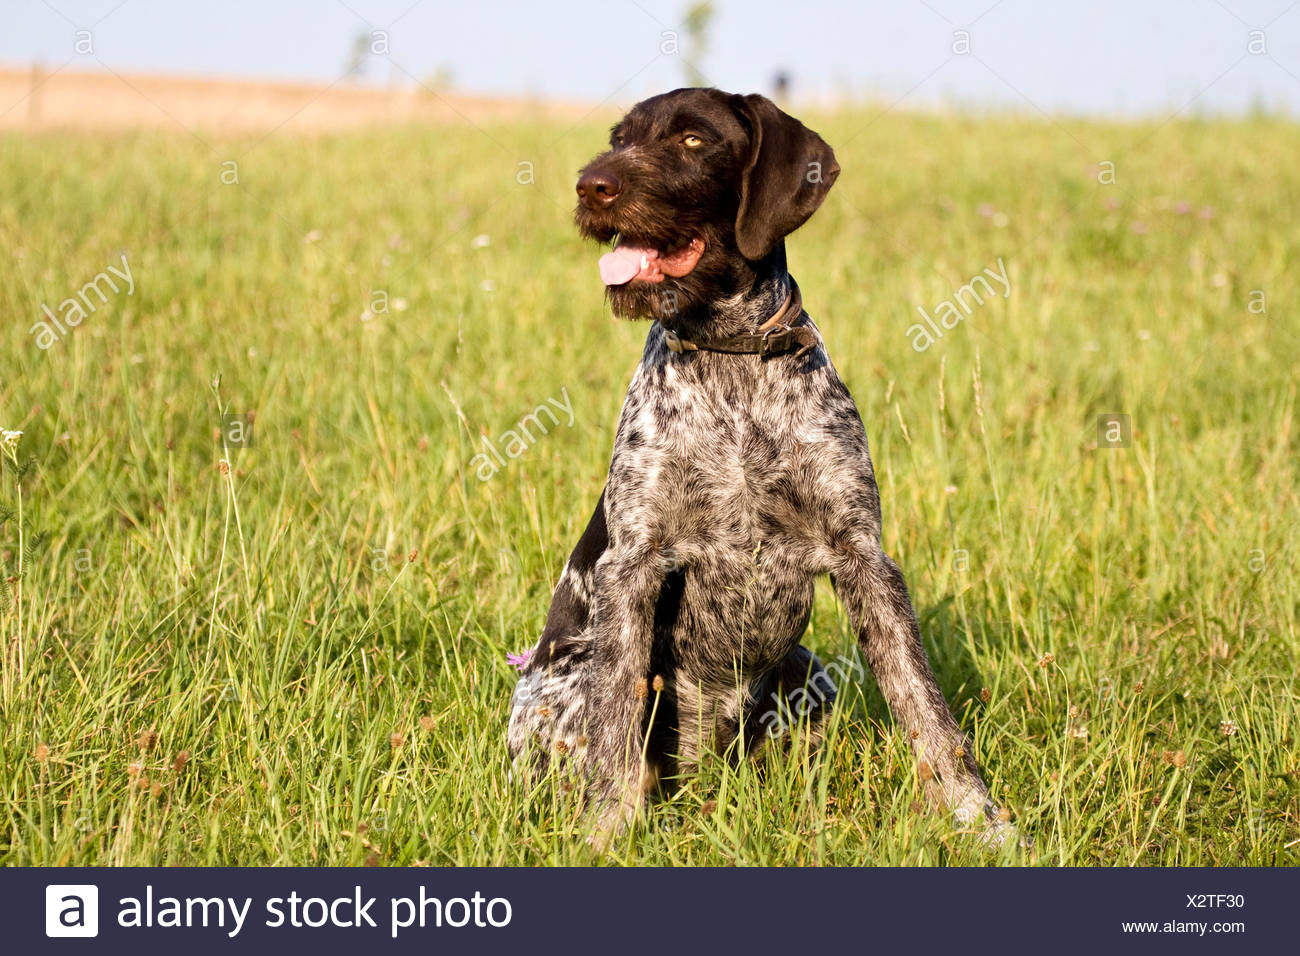 German Wirehaired Pointer, hunting dog - Stock Image